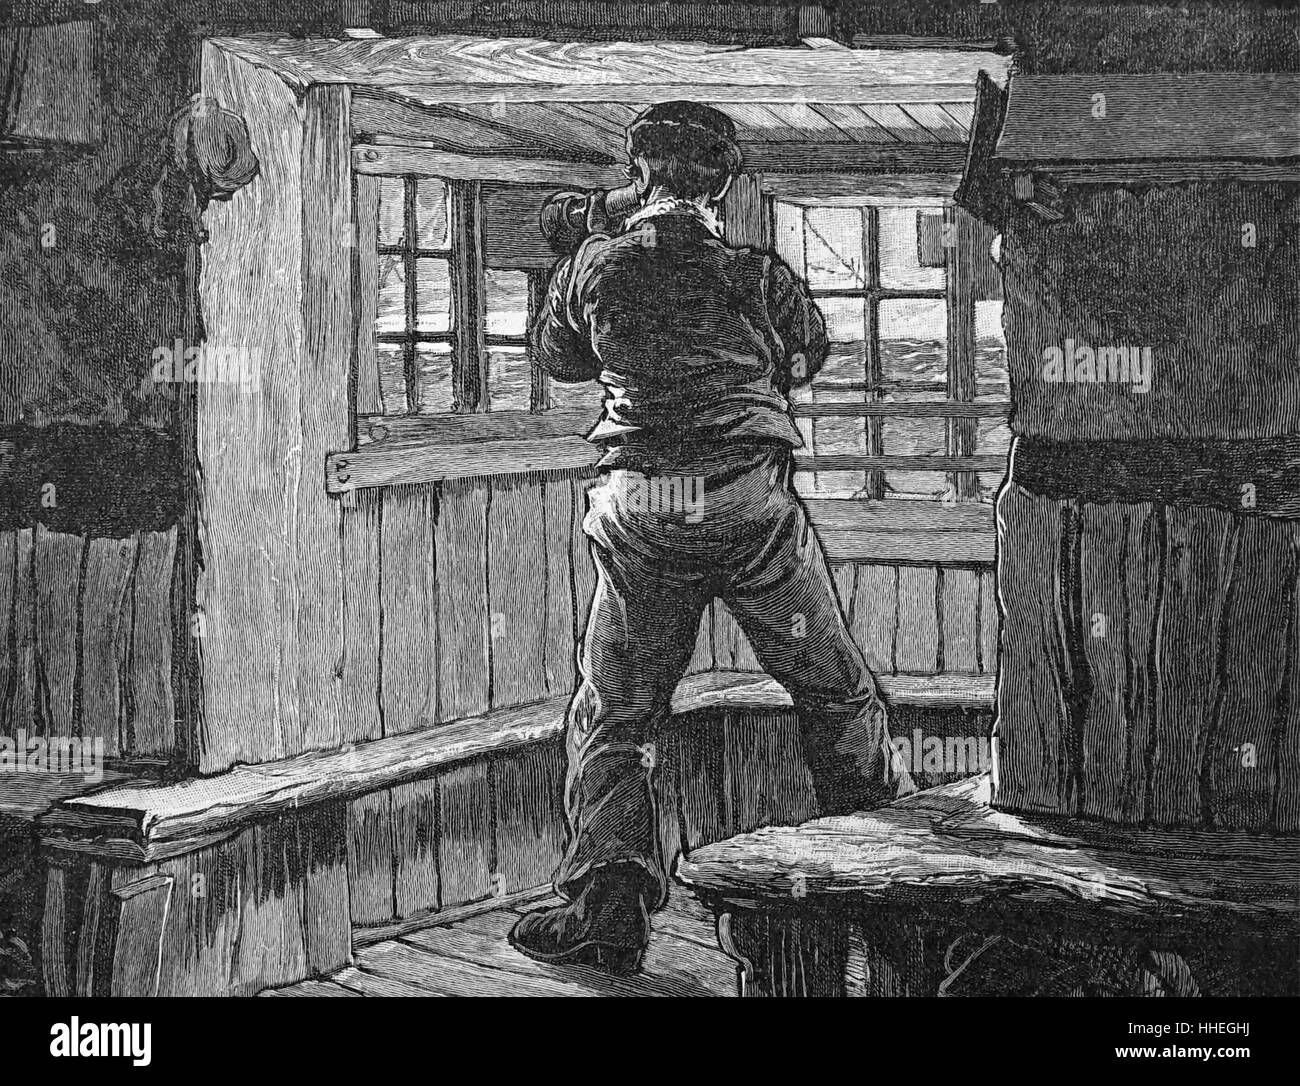 Engraving depicting a lifeboat lookout scanning the sea with a telescope. Dated 19th Century - Stock Image